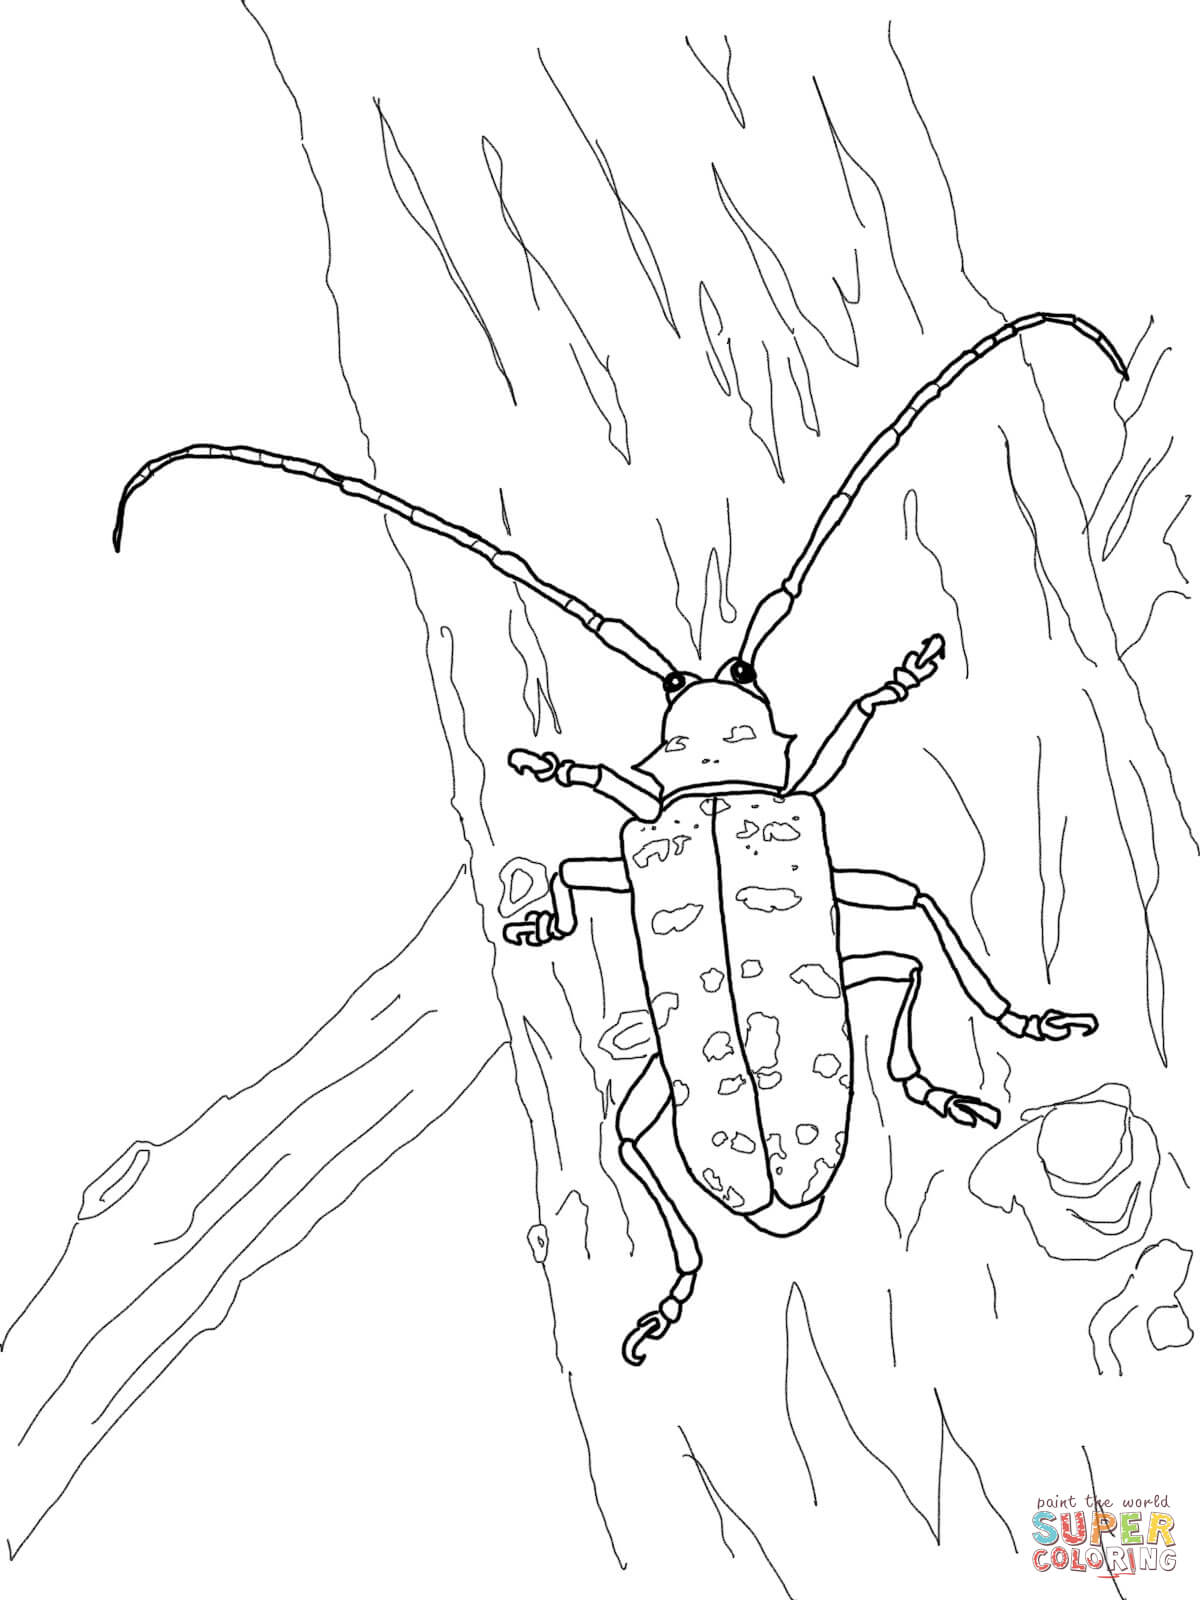 Asian Longhorned Beetle Coloring Page